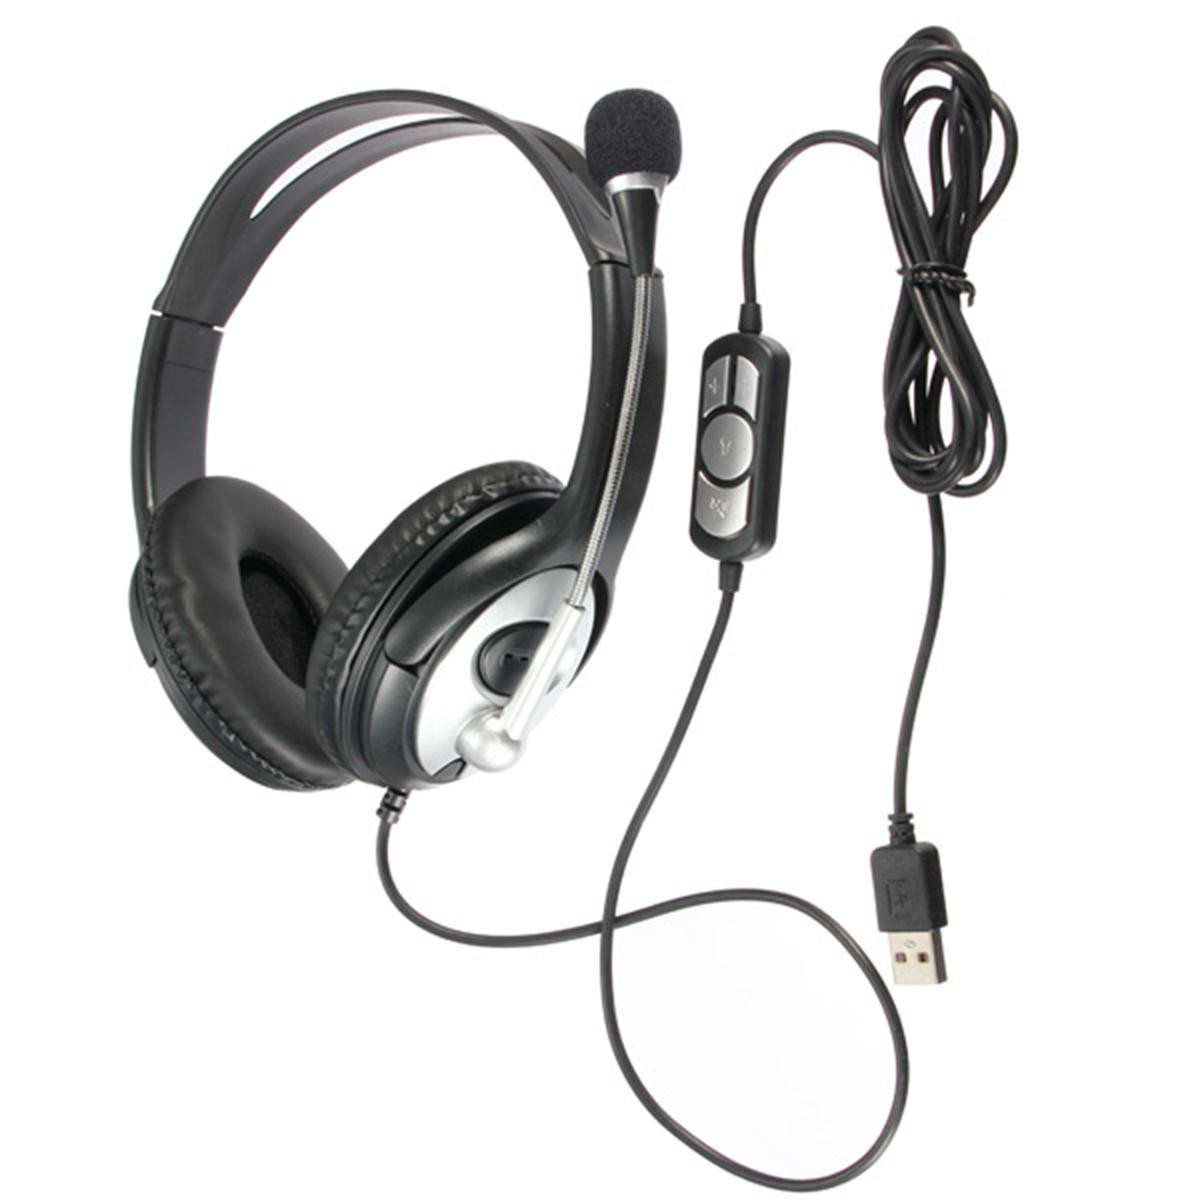 Practical USB Stereo Headphone Gaming Headset Earphone with Microphone for PC Laptop Notebook Music Gift image